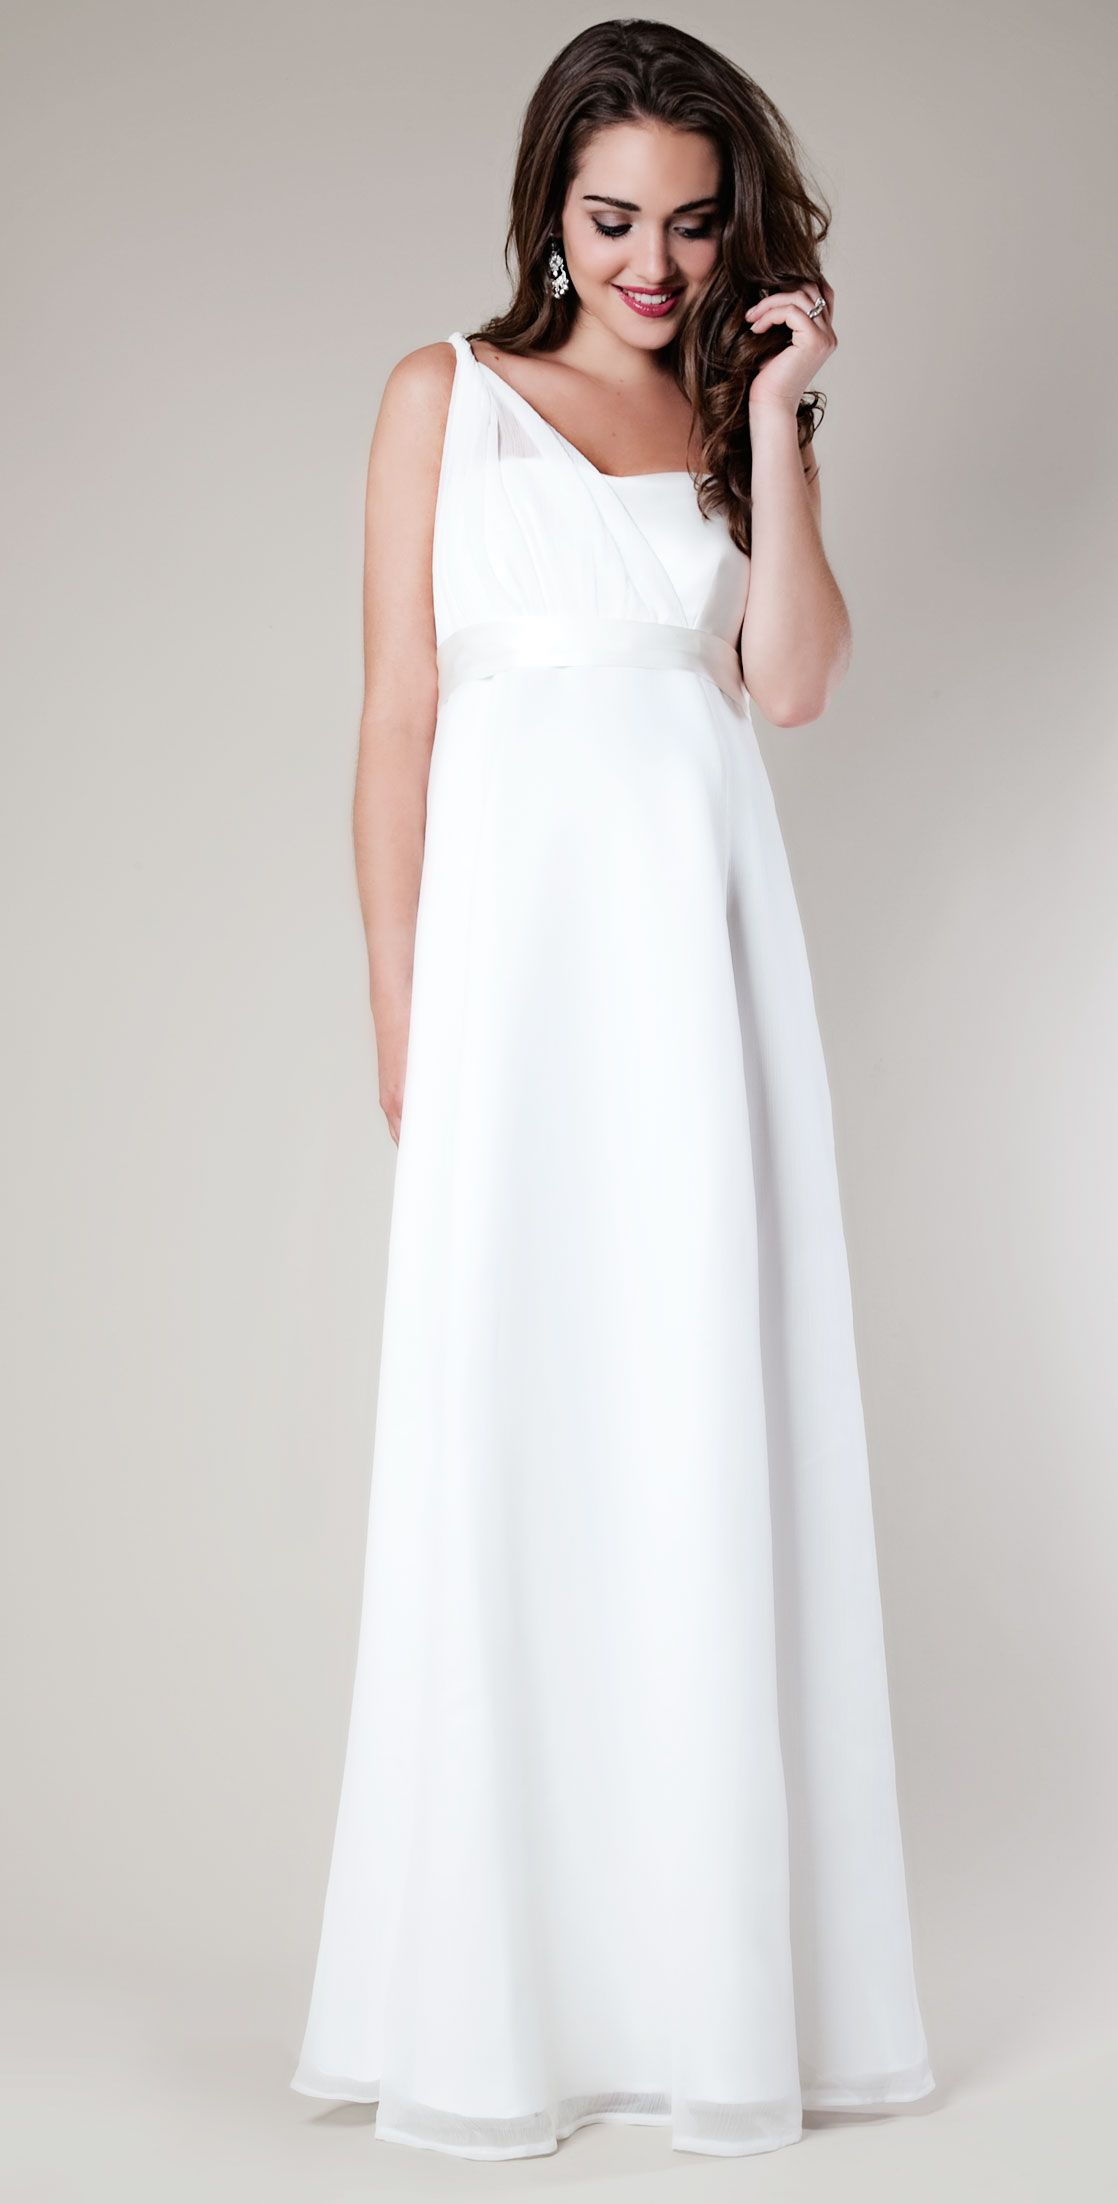 Asymmetrical Wedding Gown   Tiffany rose, Gowns and Bridal gowns